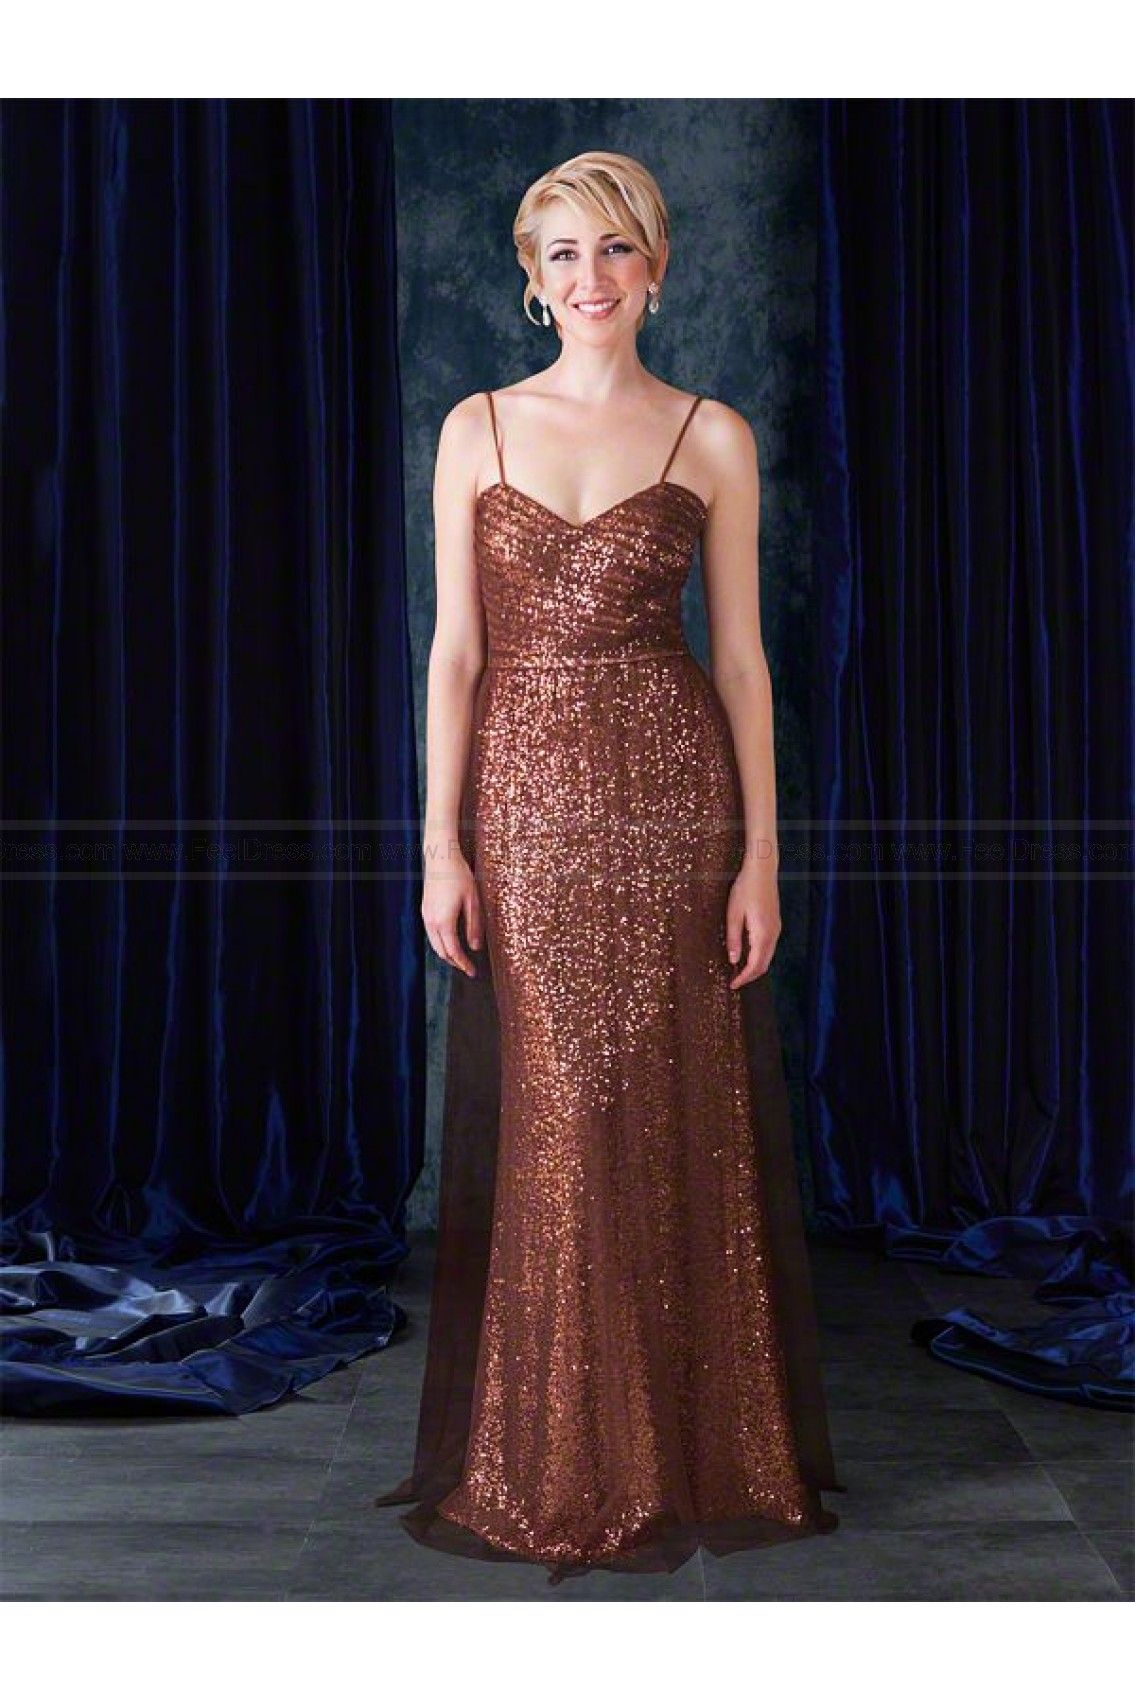 Alfred angelo bridesmaid dress style 8116l new alfred angelo alfred angelo bridesmaid dress style 8116l new ombrellifo Choice Image